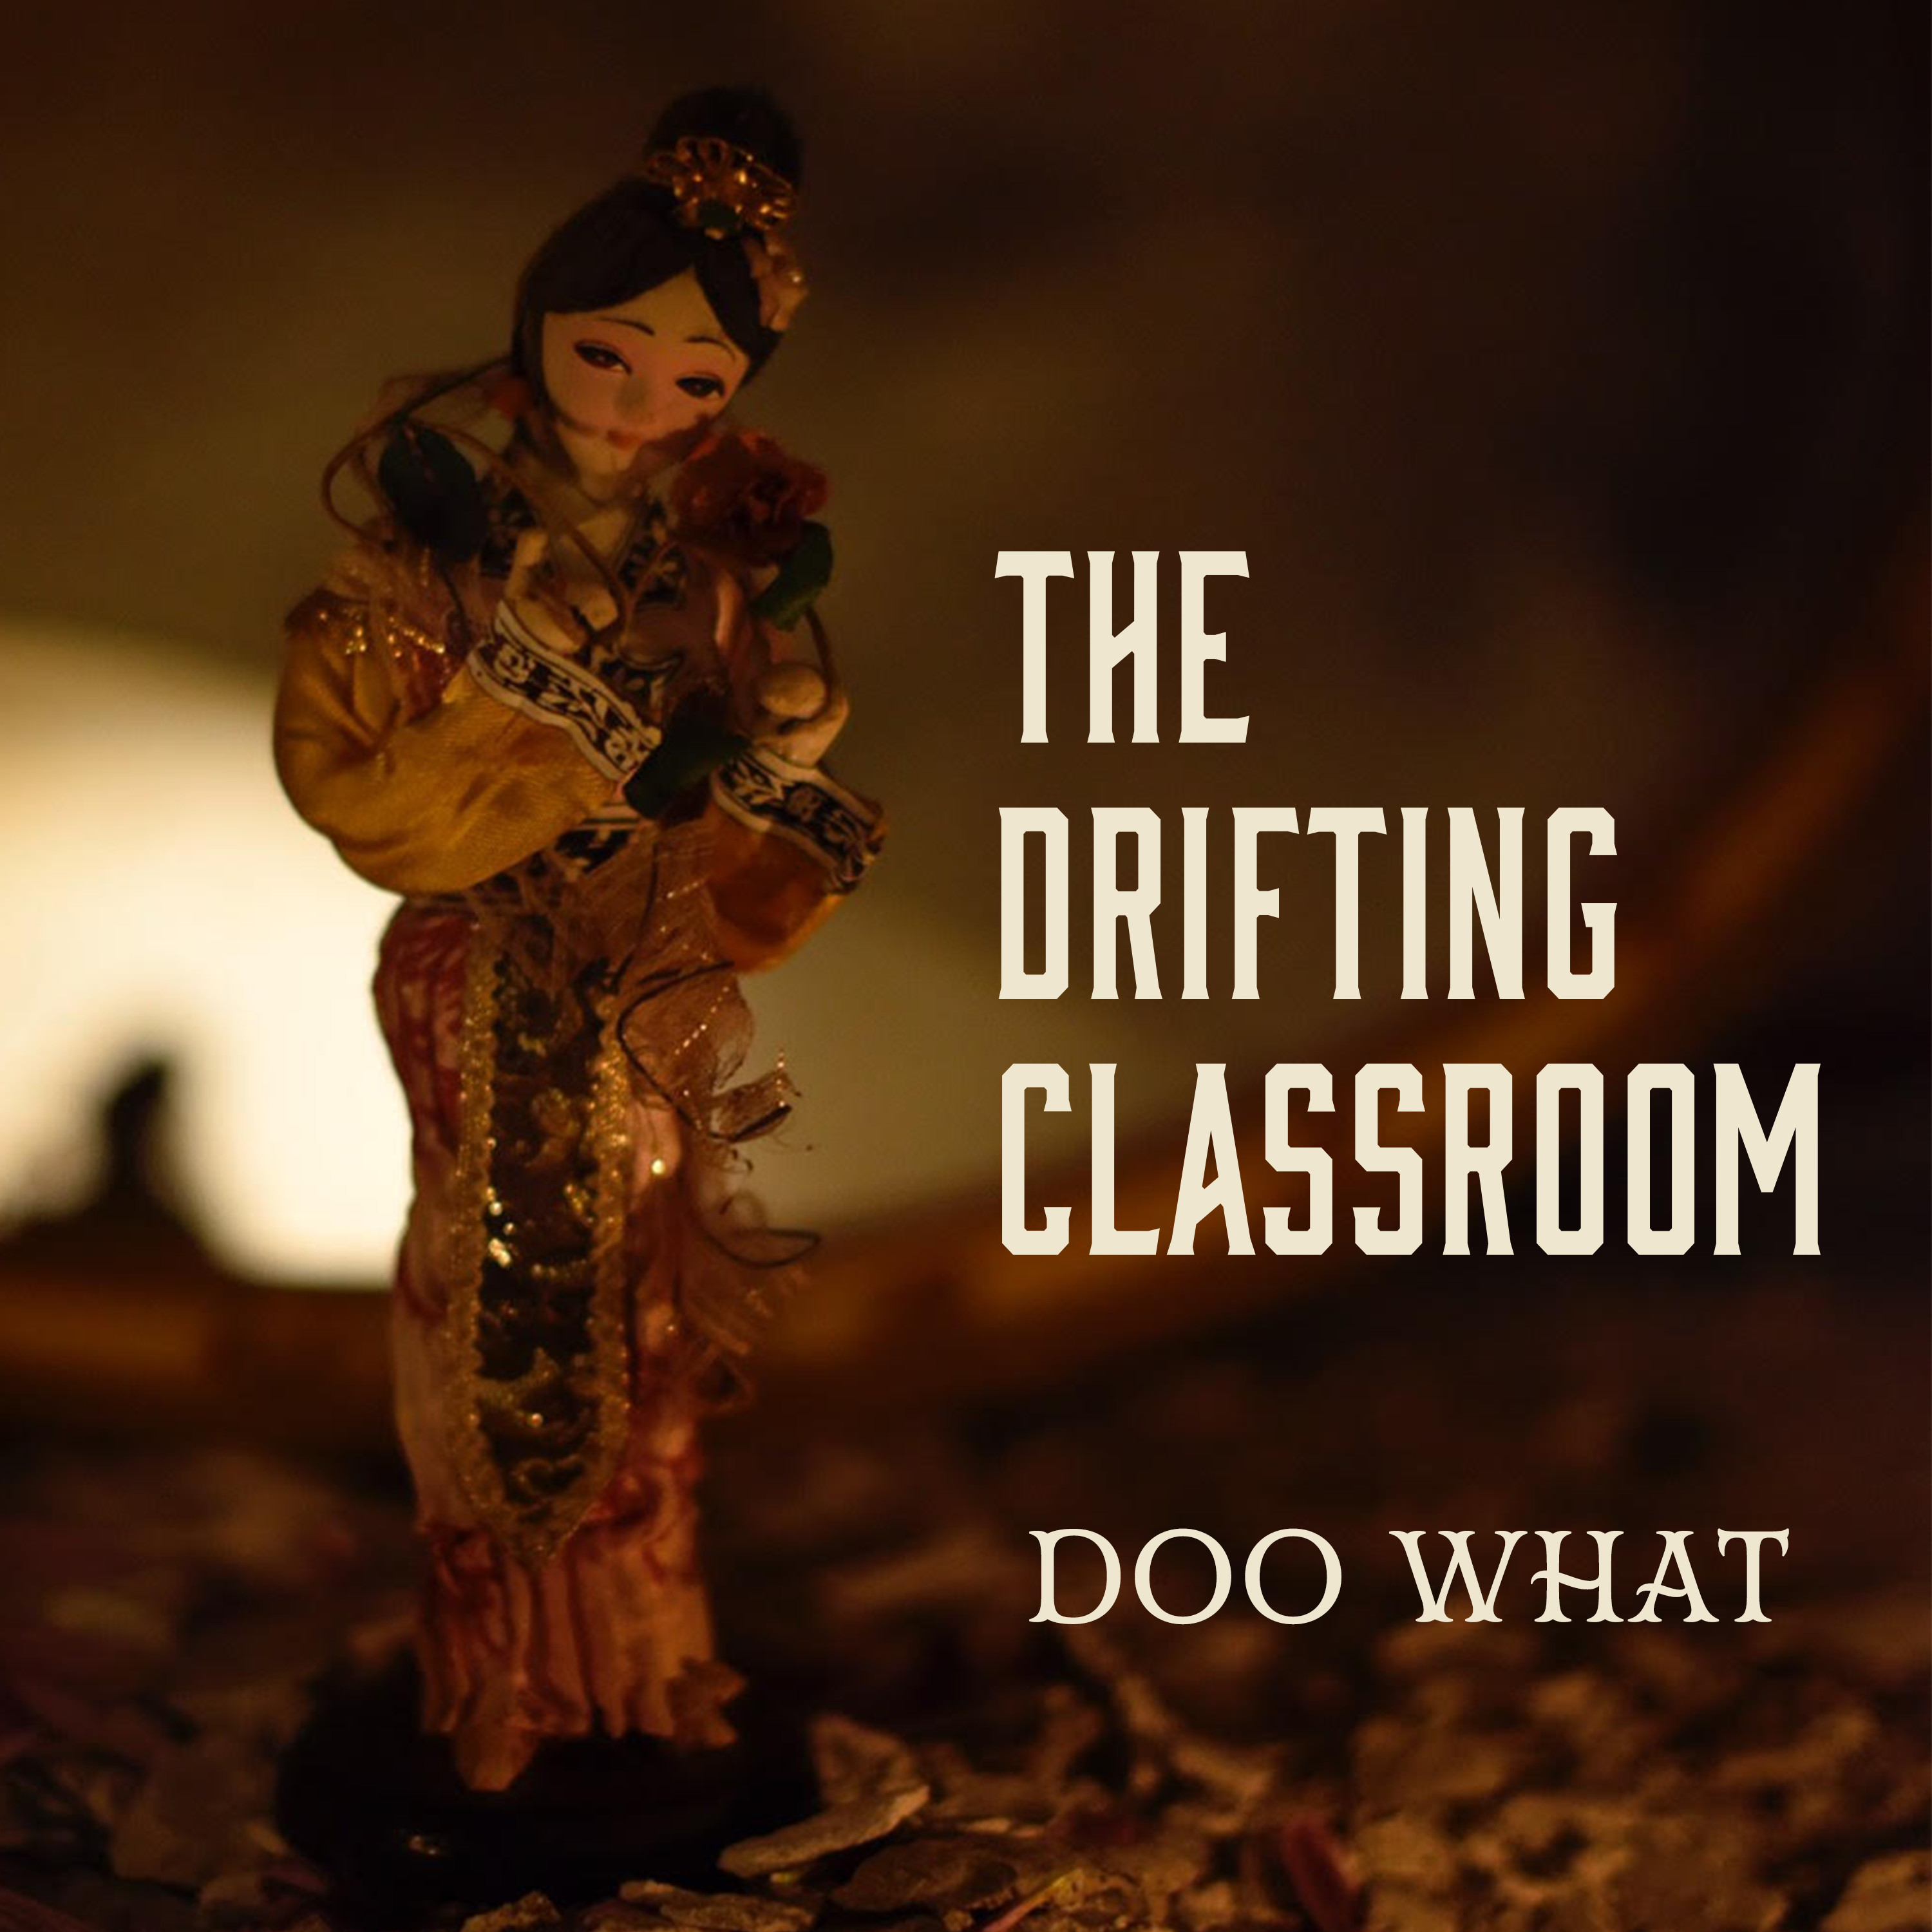 The Drifting Classroom band picture